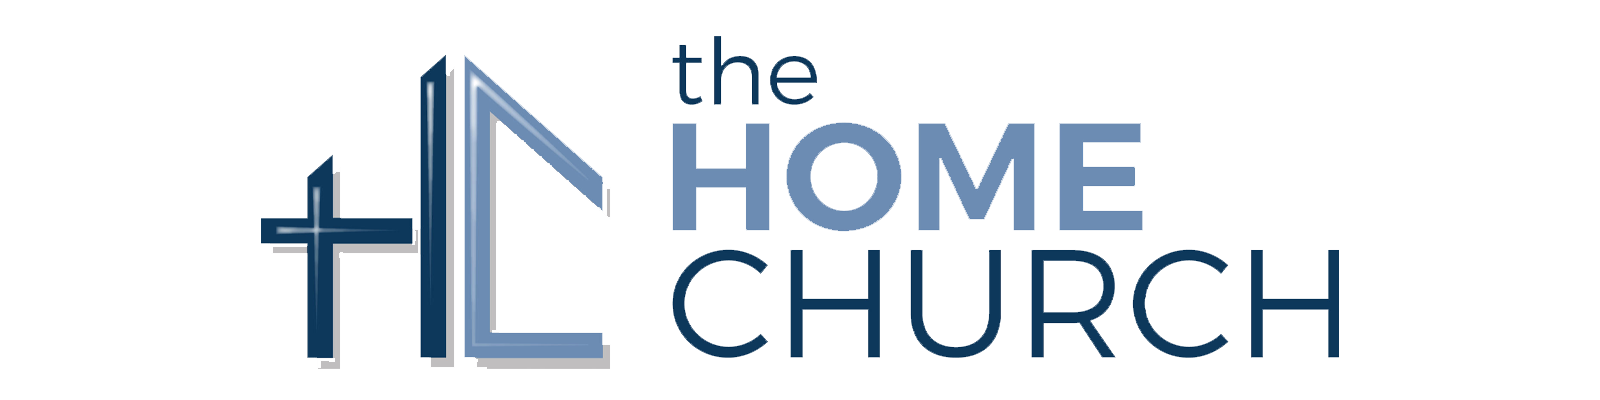 The Home Church